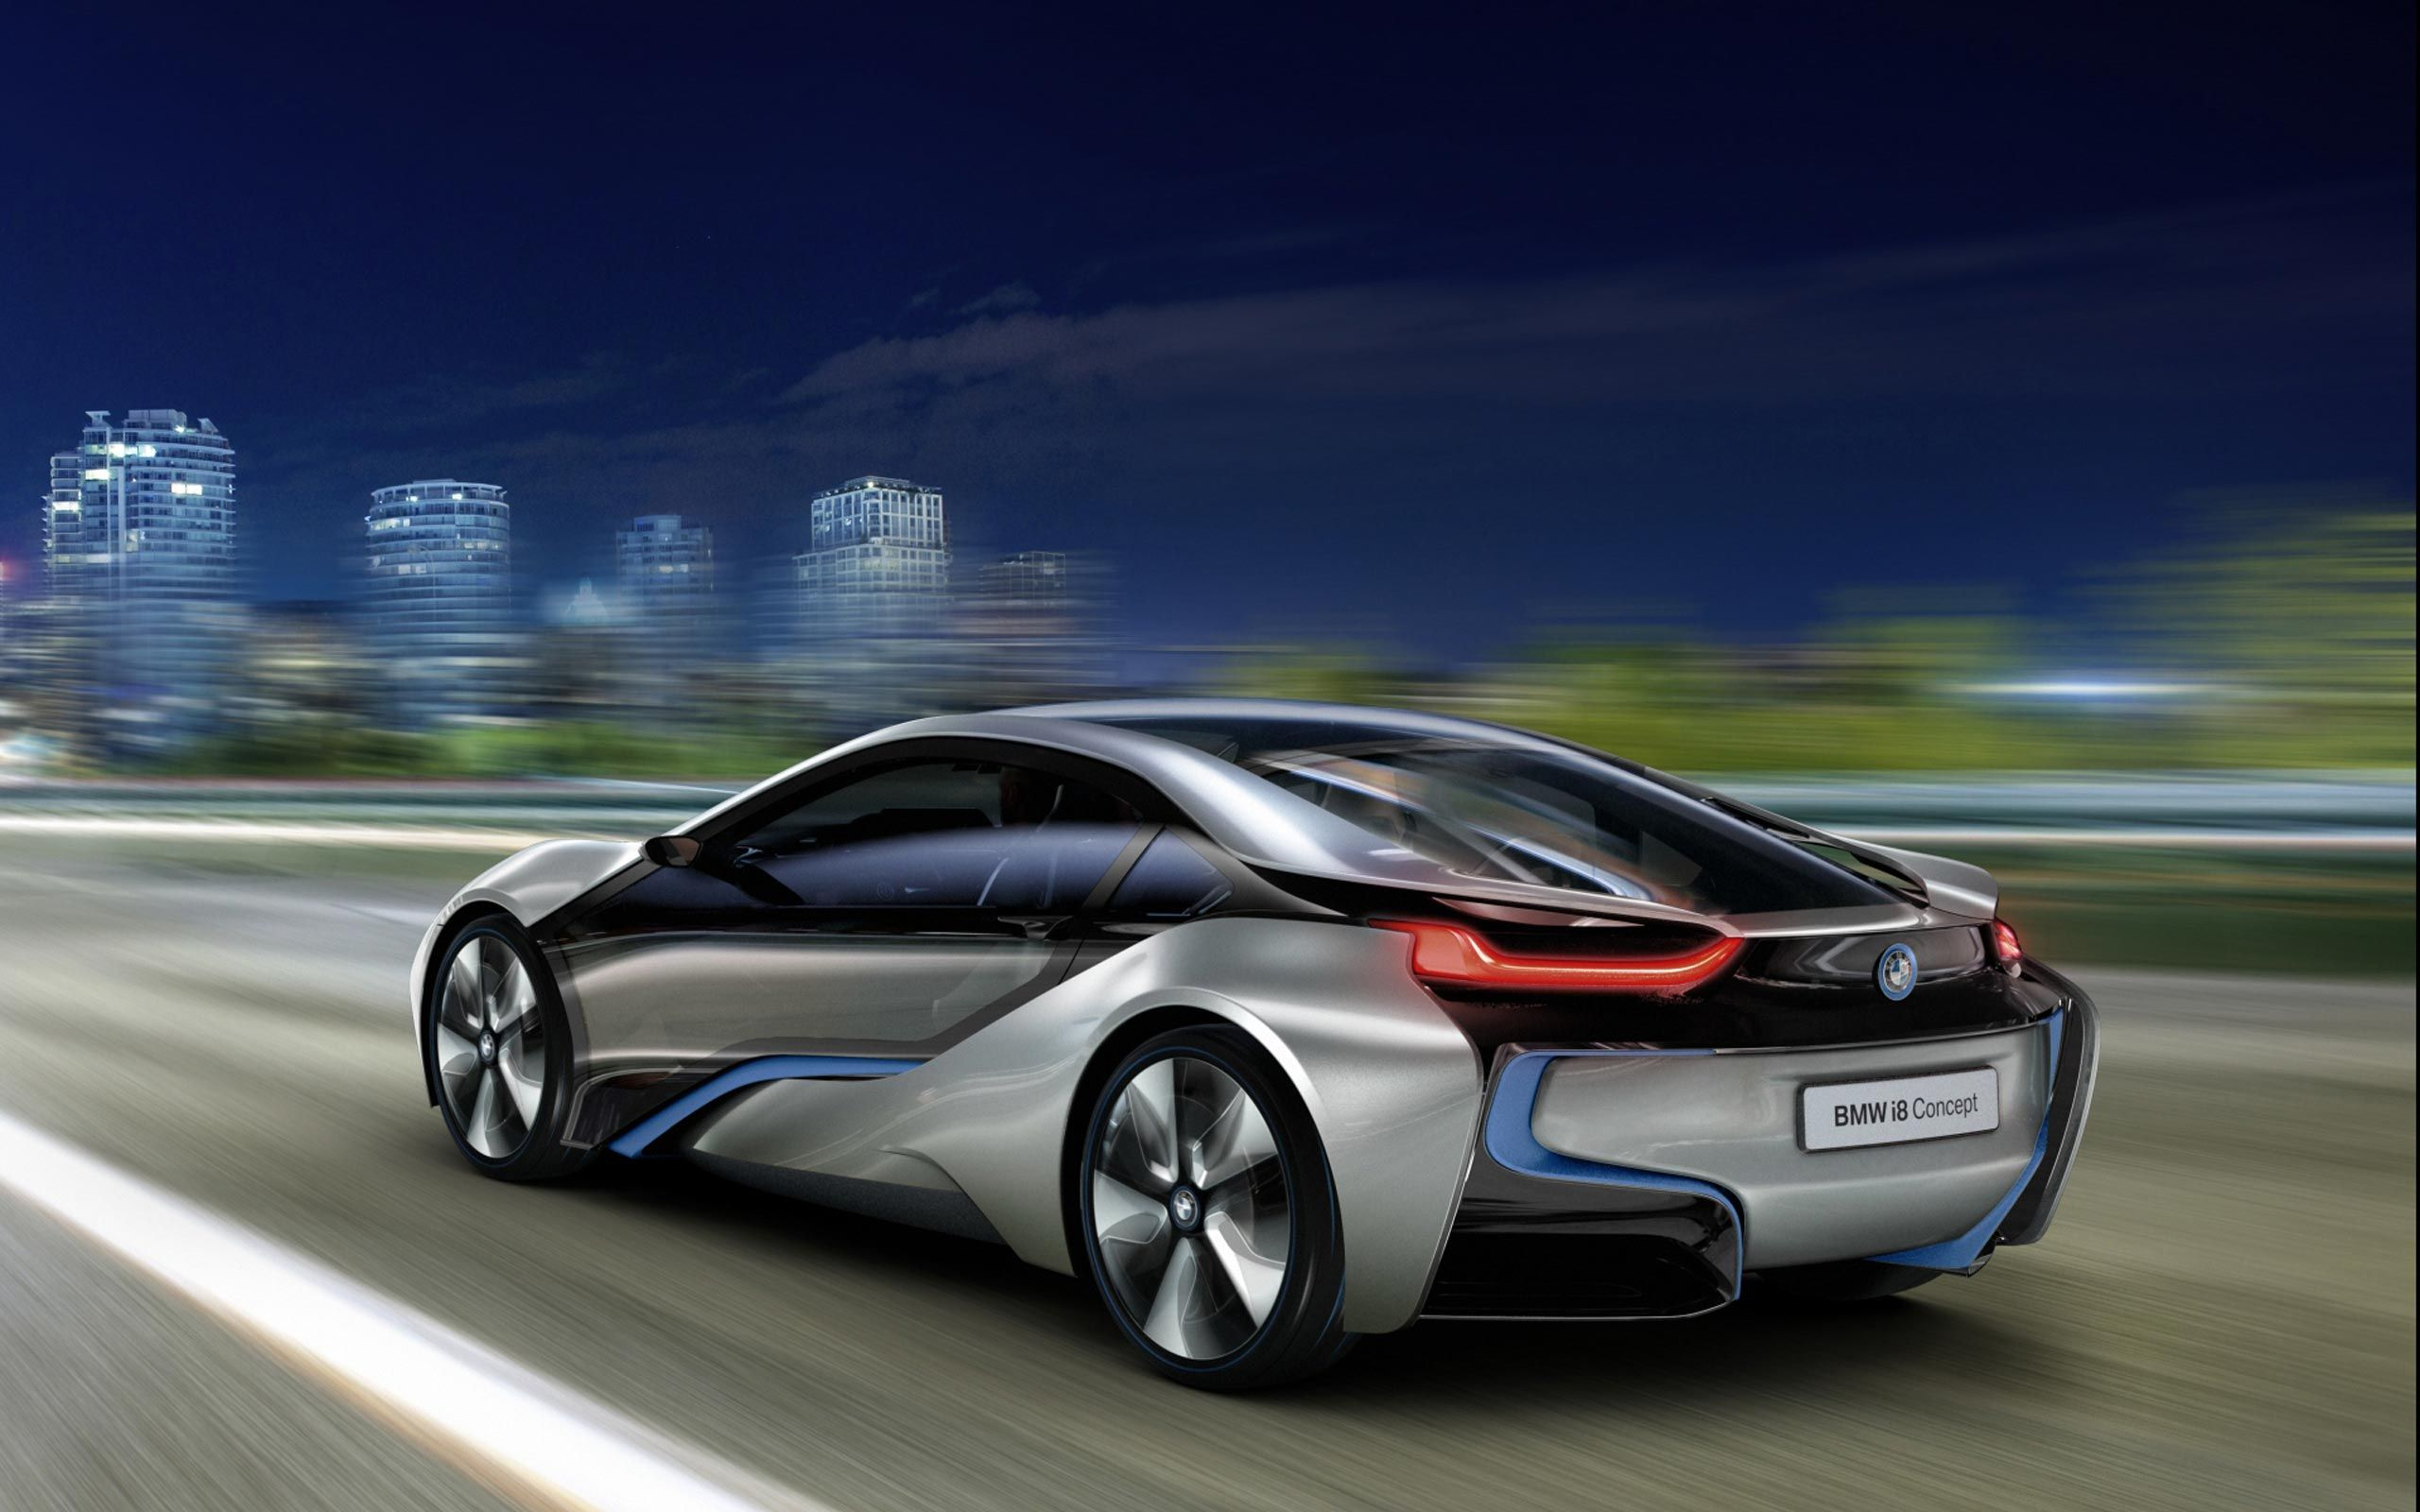 Top Wallpaper High Resolution Bmw - 8d8d29f88338af040f9e2f6ed55163a4  Graphic_7683100.jpg